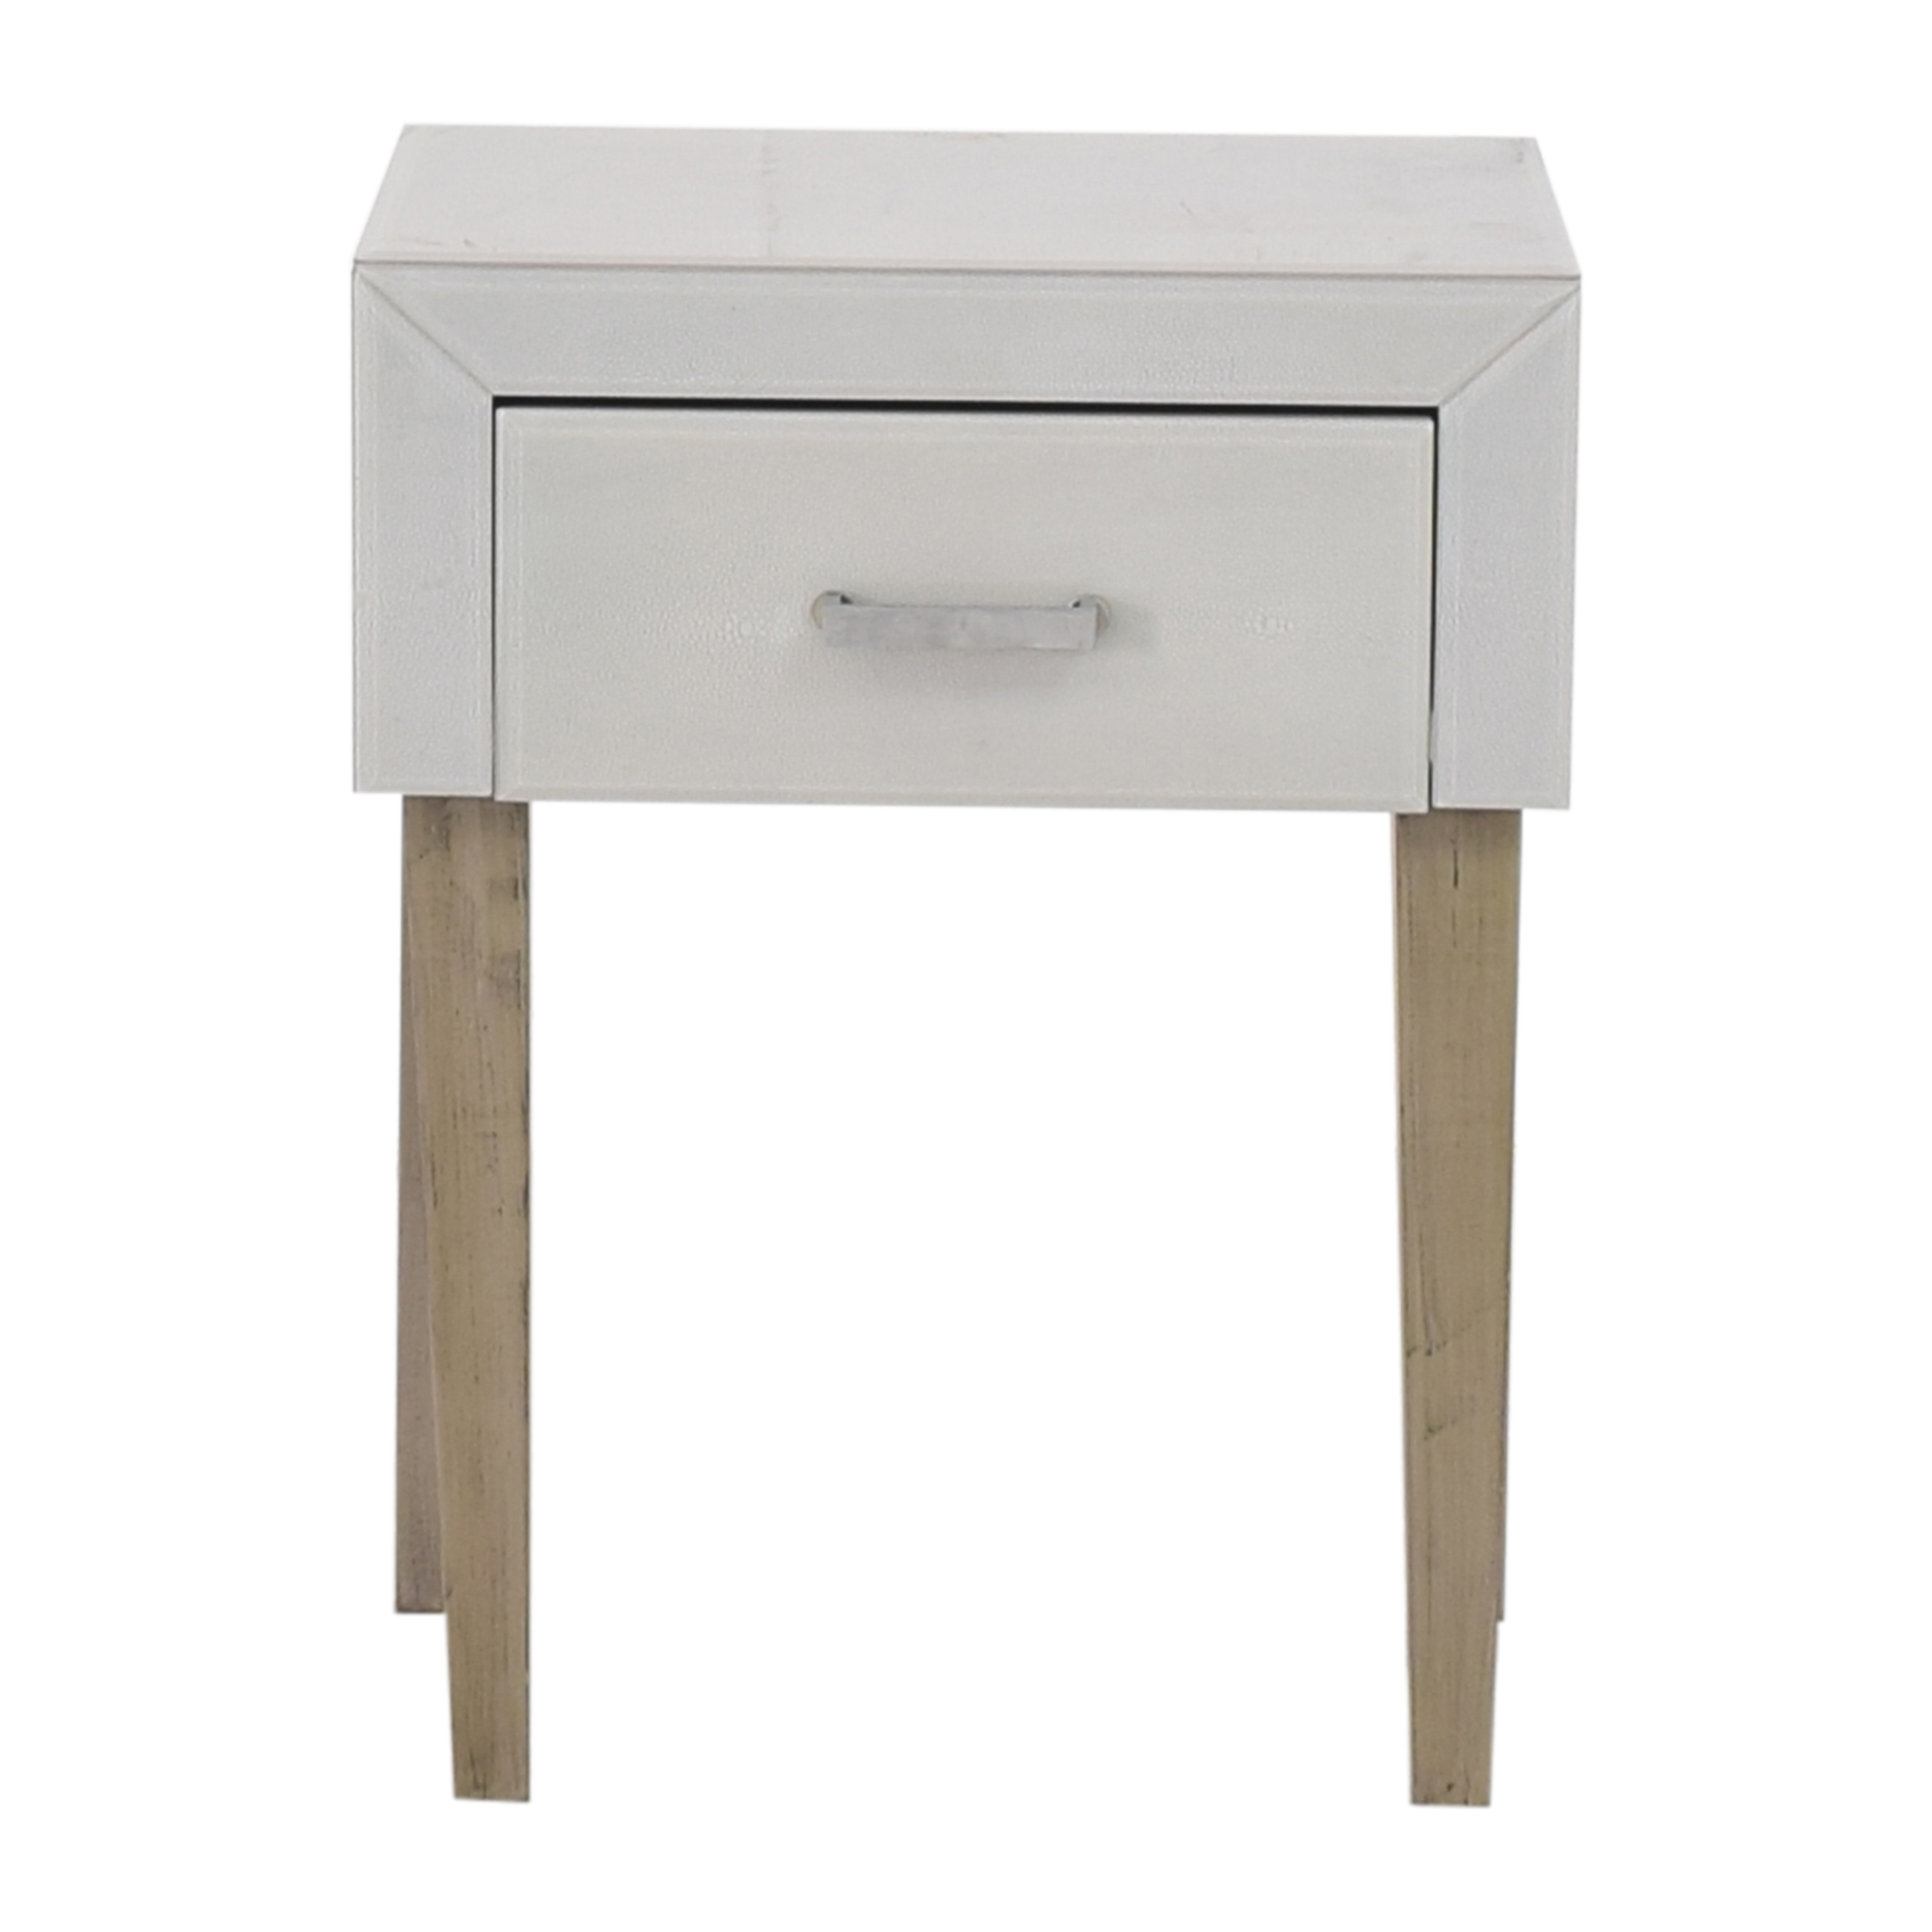 shop Creative Co-Op One Drawer End Table Creative Co-Op End Tables